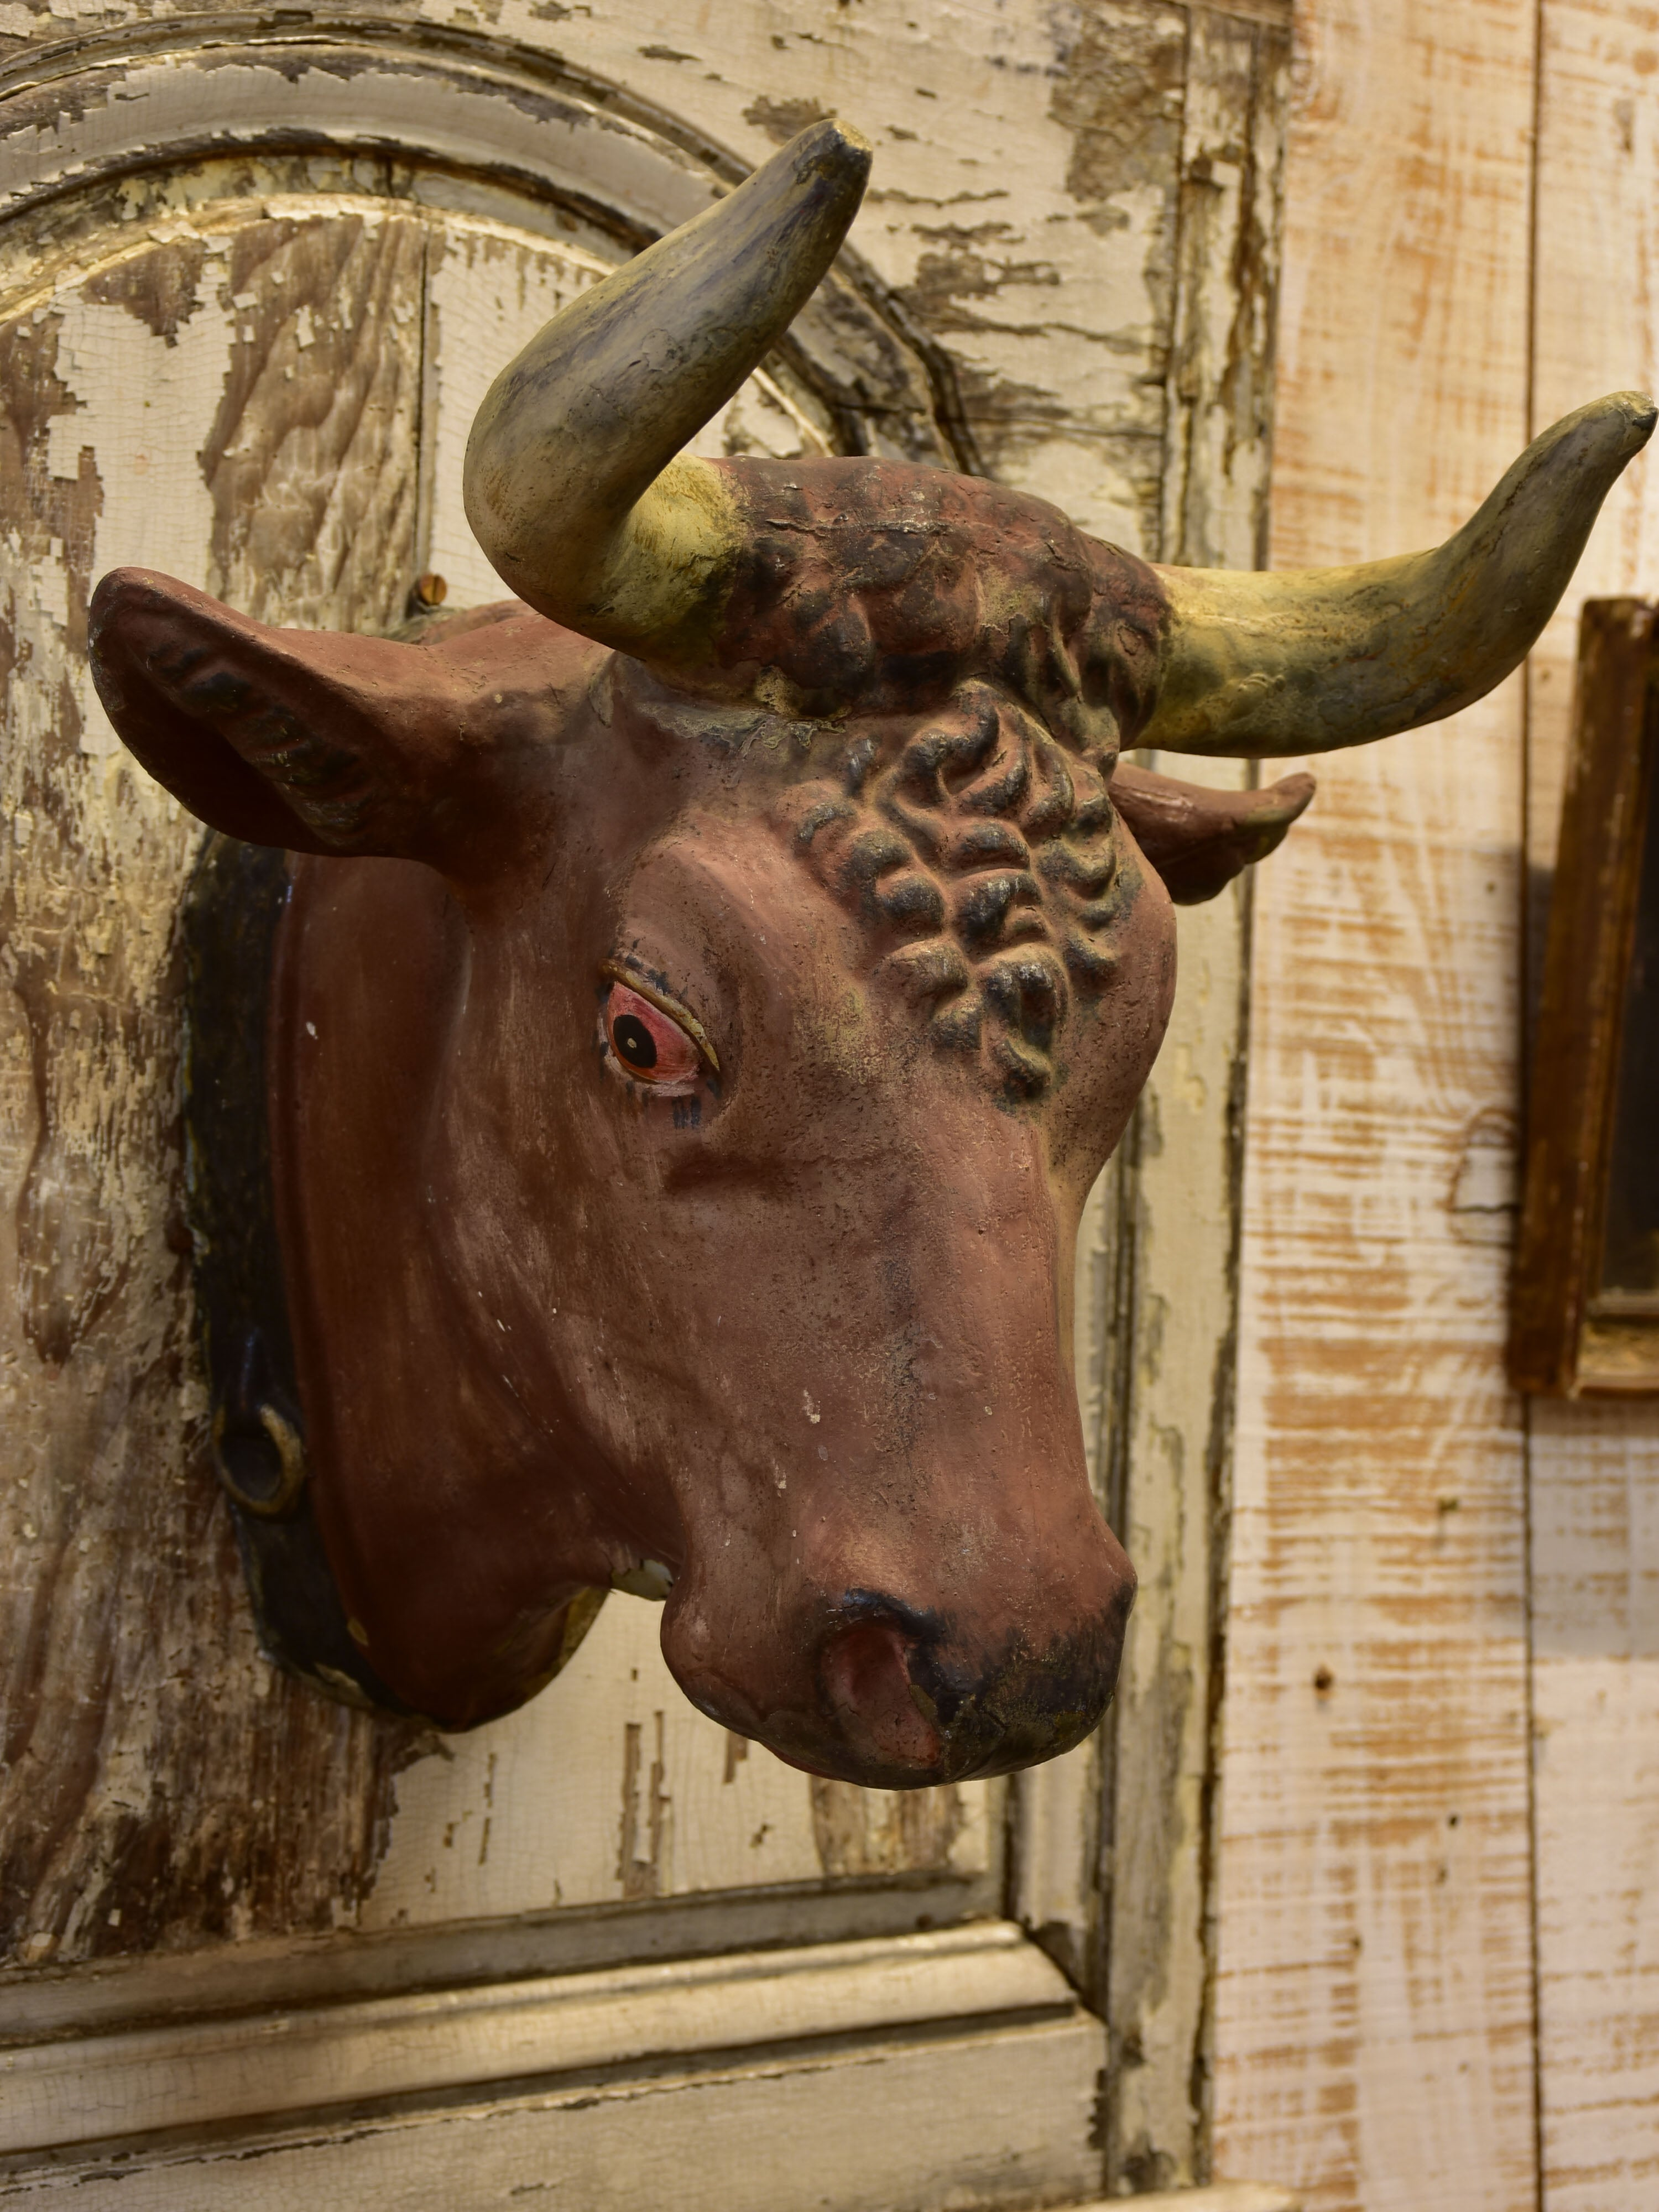 Rustic French cows head from a Butcher's shop